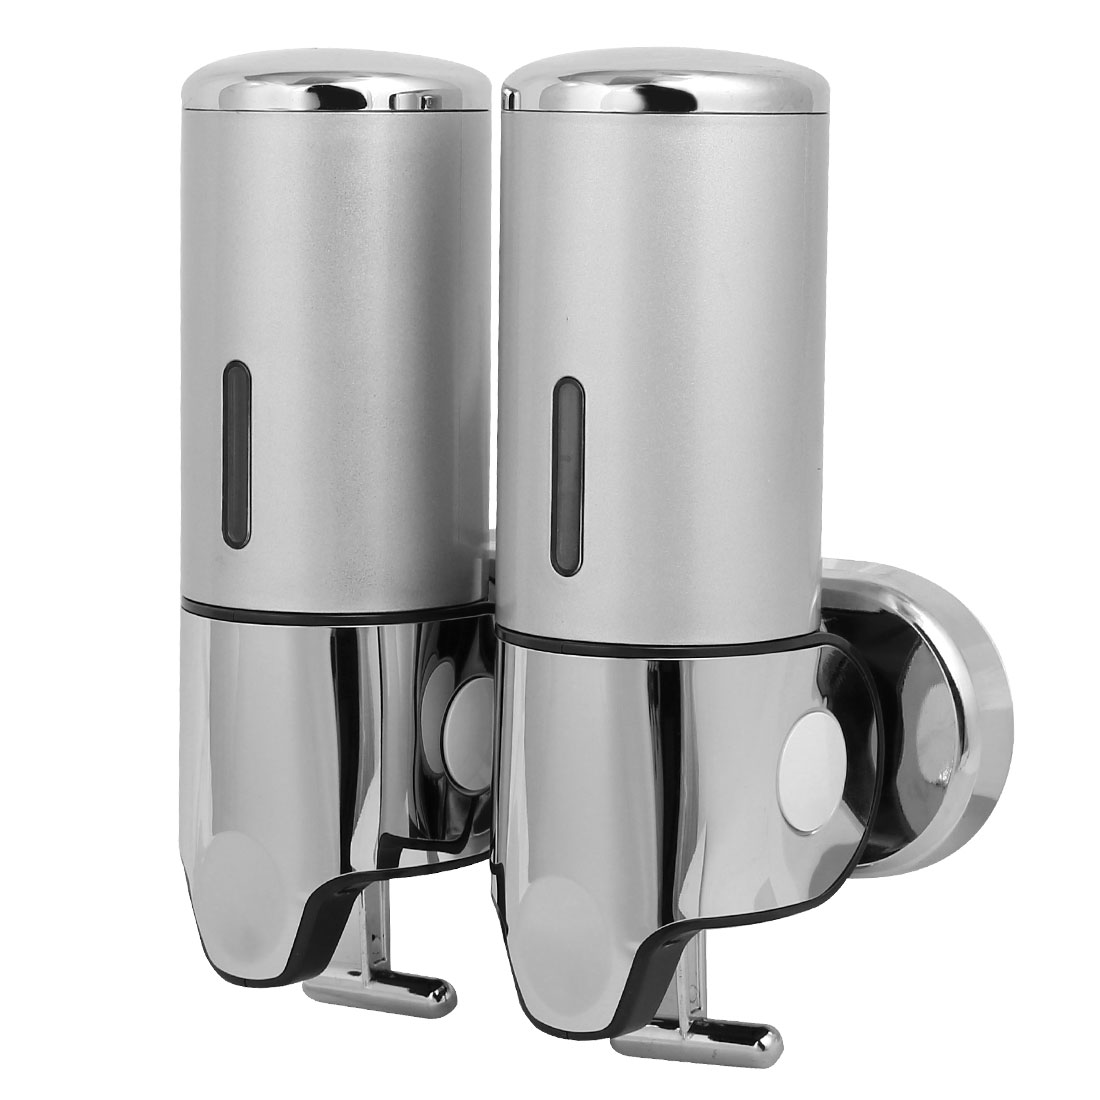 ABS Wall Mount Double Chember Soap Dispenser Silver Tone, 17 oz Each Capacity